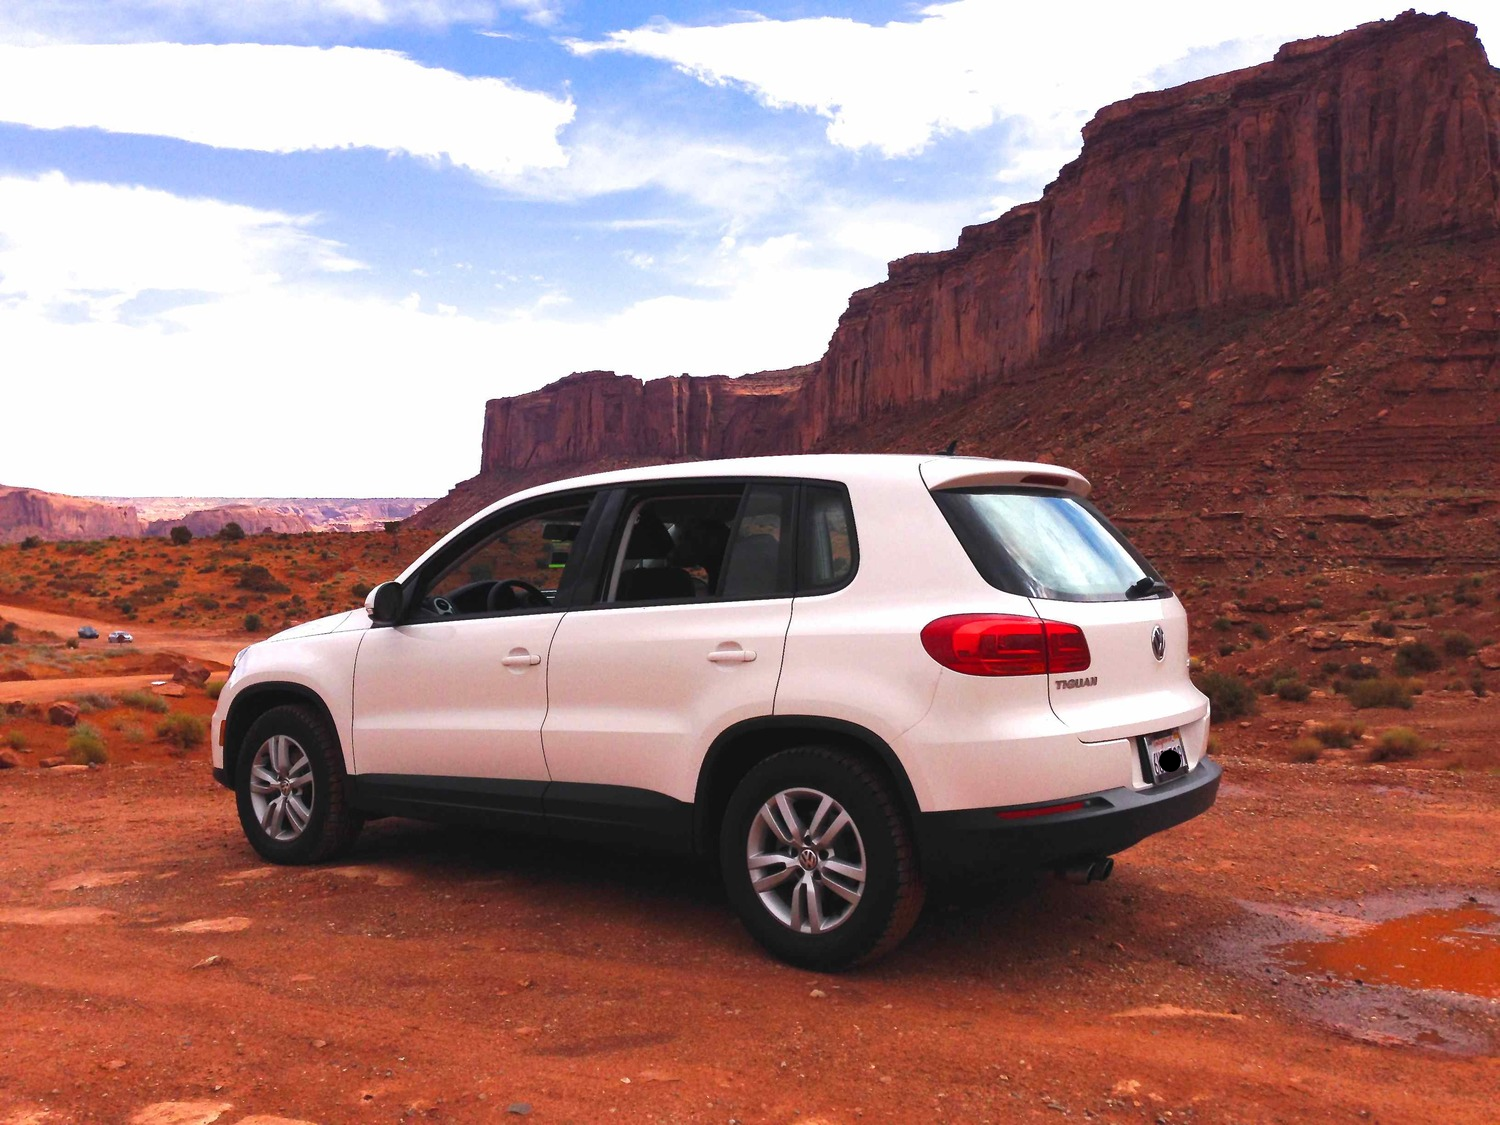 My all-time favorite crossover vehicle is the VW Tiguan. A funny name but one heck of a drive. Loaded with standard safety features and priced reasonably, the Tiguan gets my vote every time.